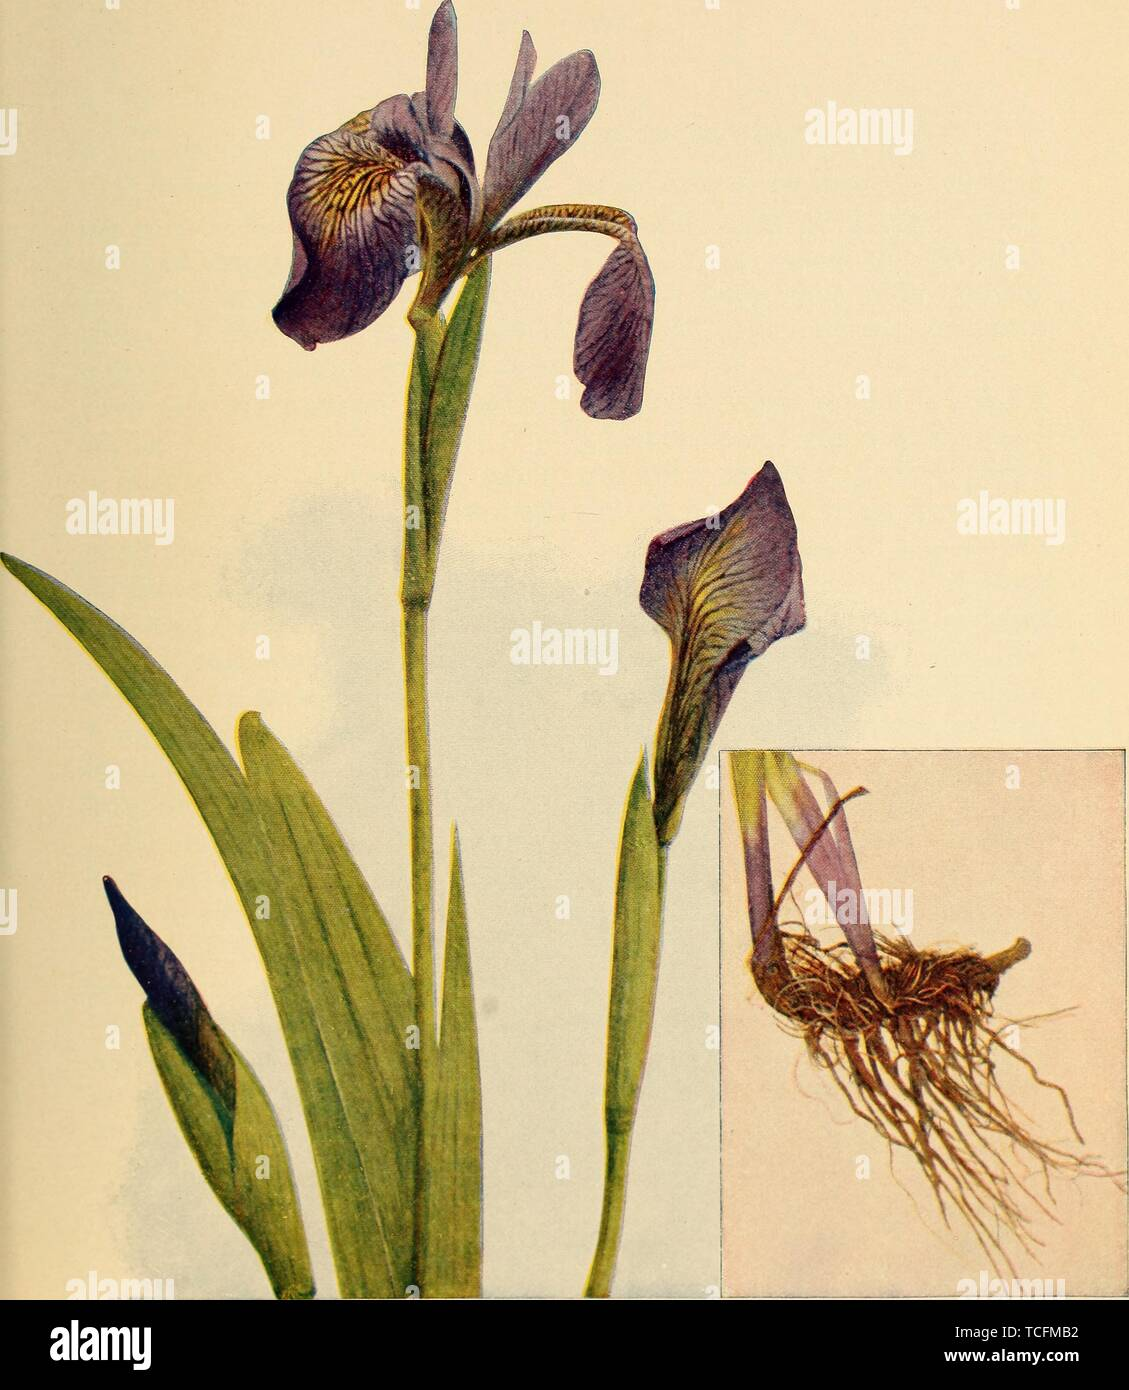 Engraved drawing of the Blue Iris (Iris Versicolor), from the book 'Birds and Nature' by A. W, 1900. Mumford. Courtesy Internet Archive. () - Stock Image